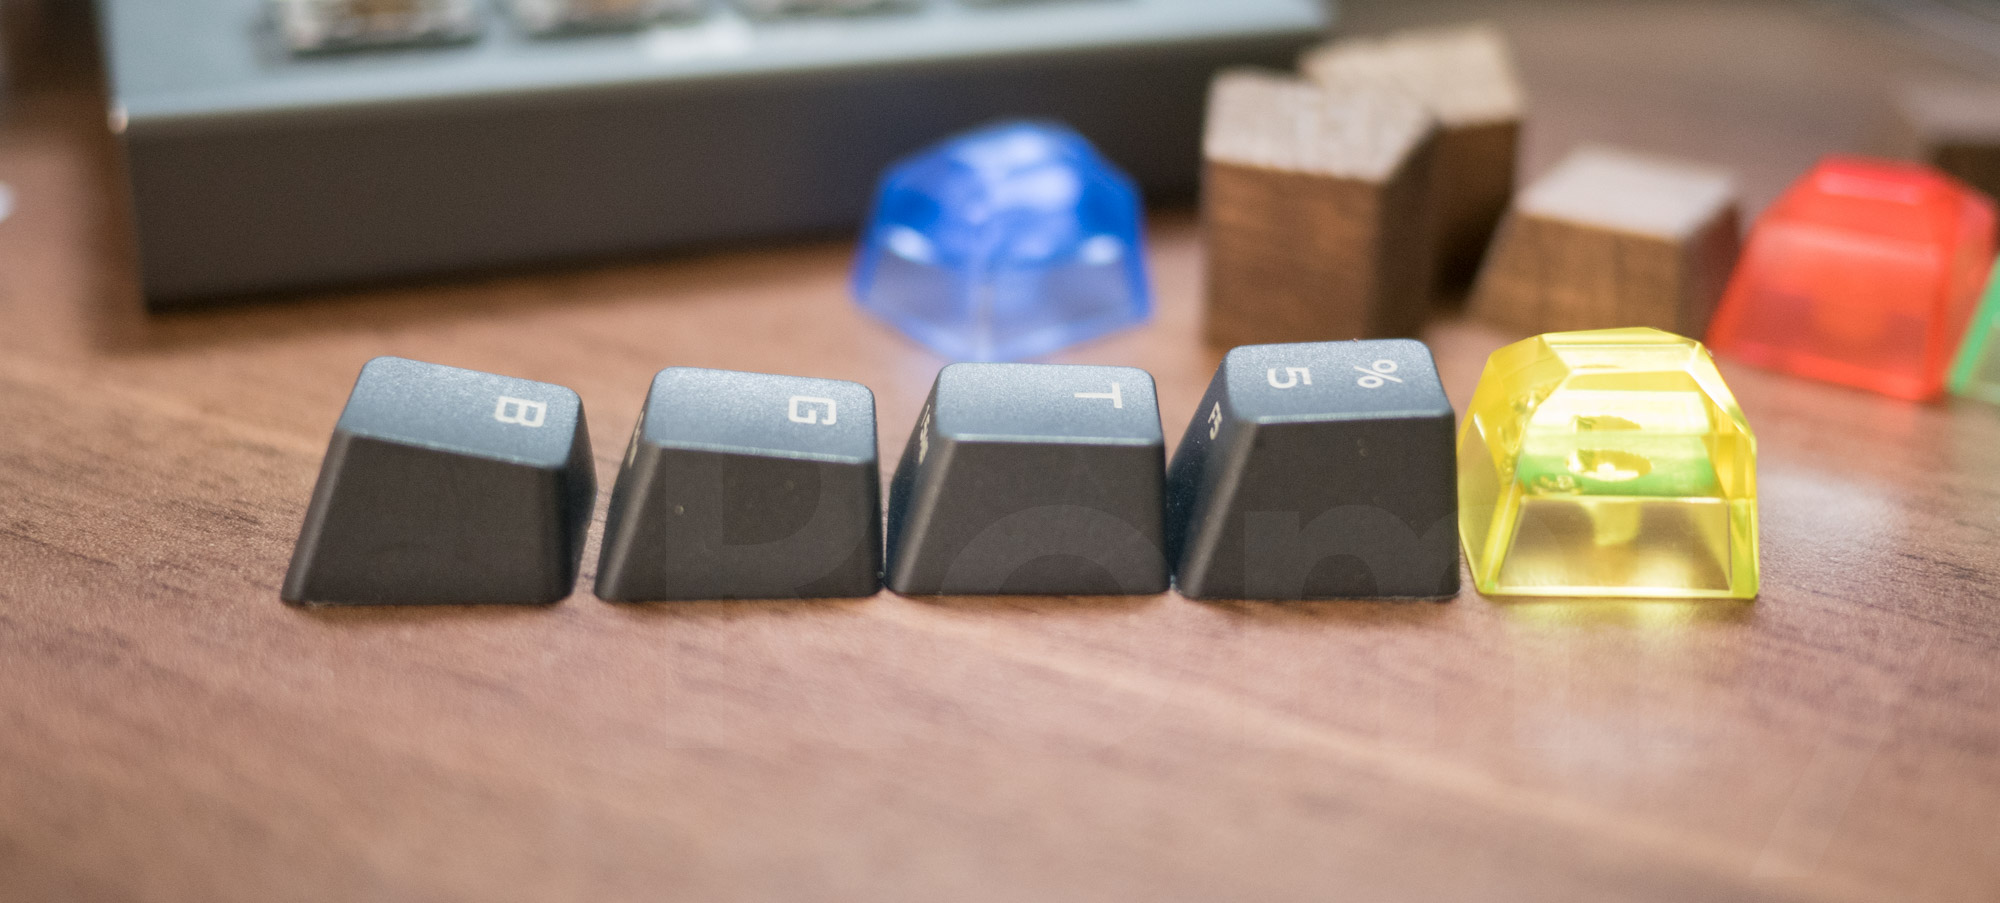 Gem Artisan Keycaps Height